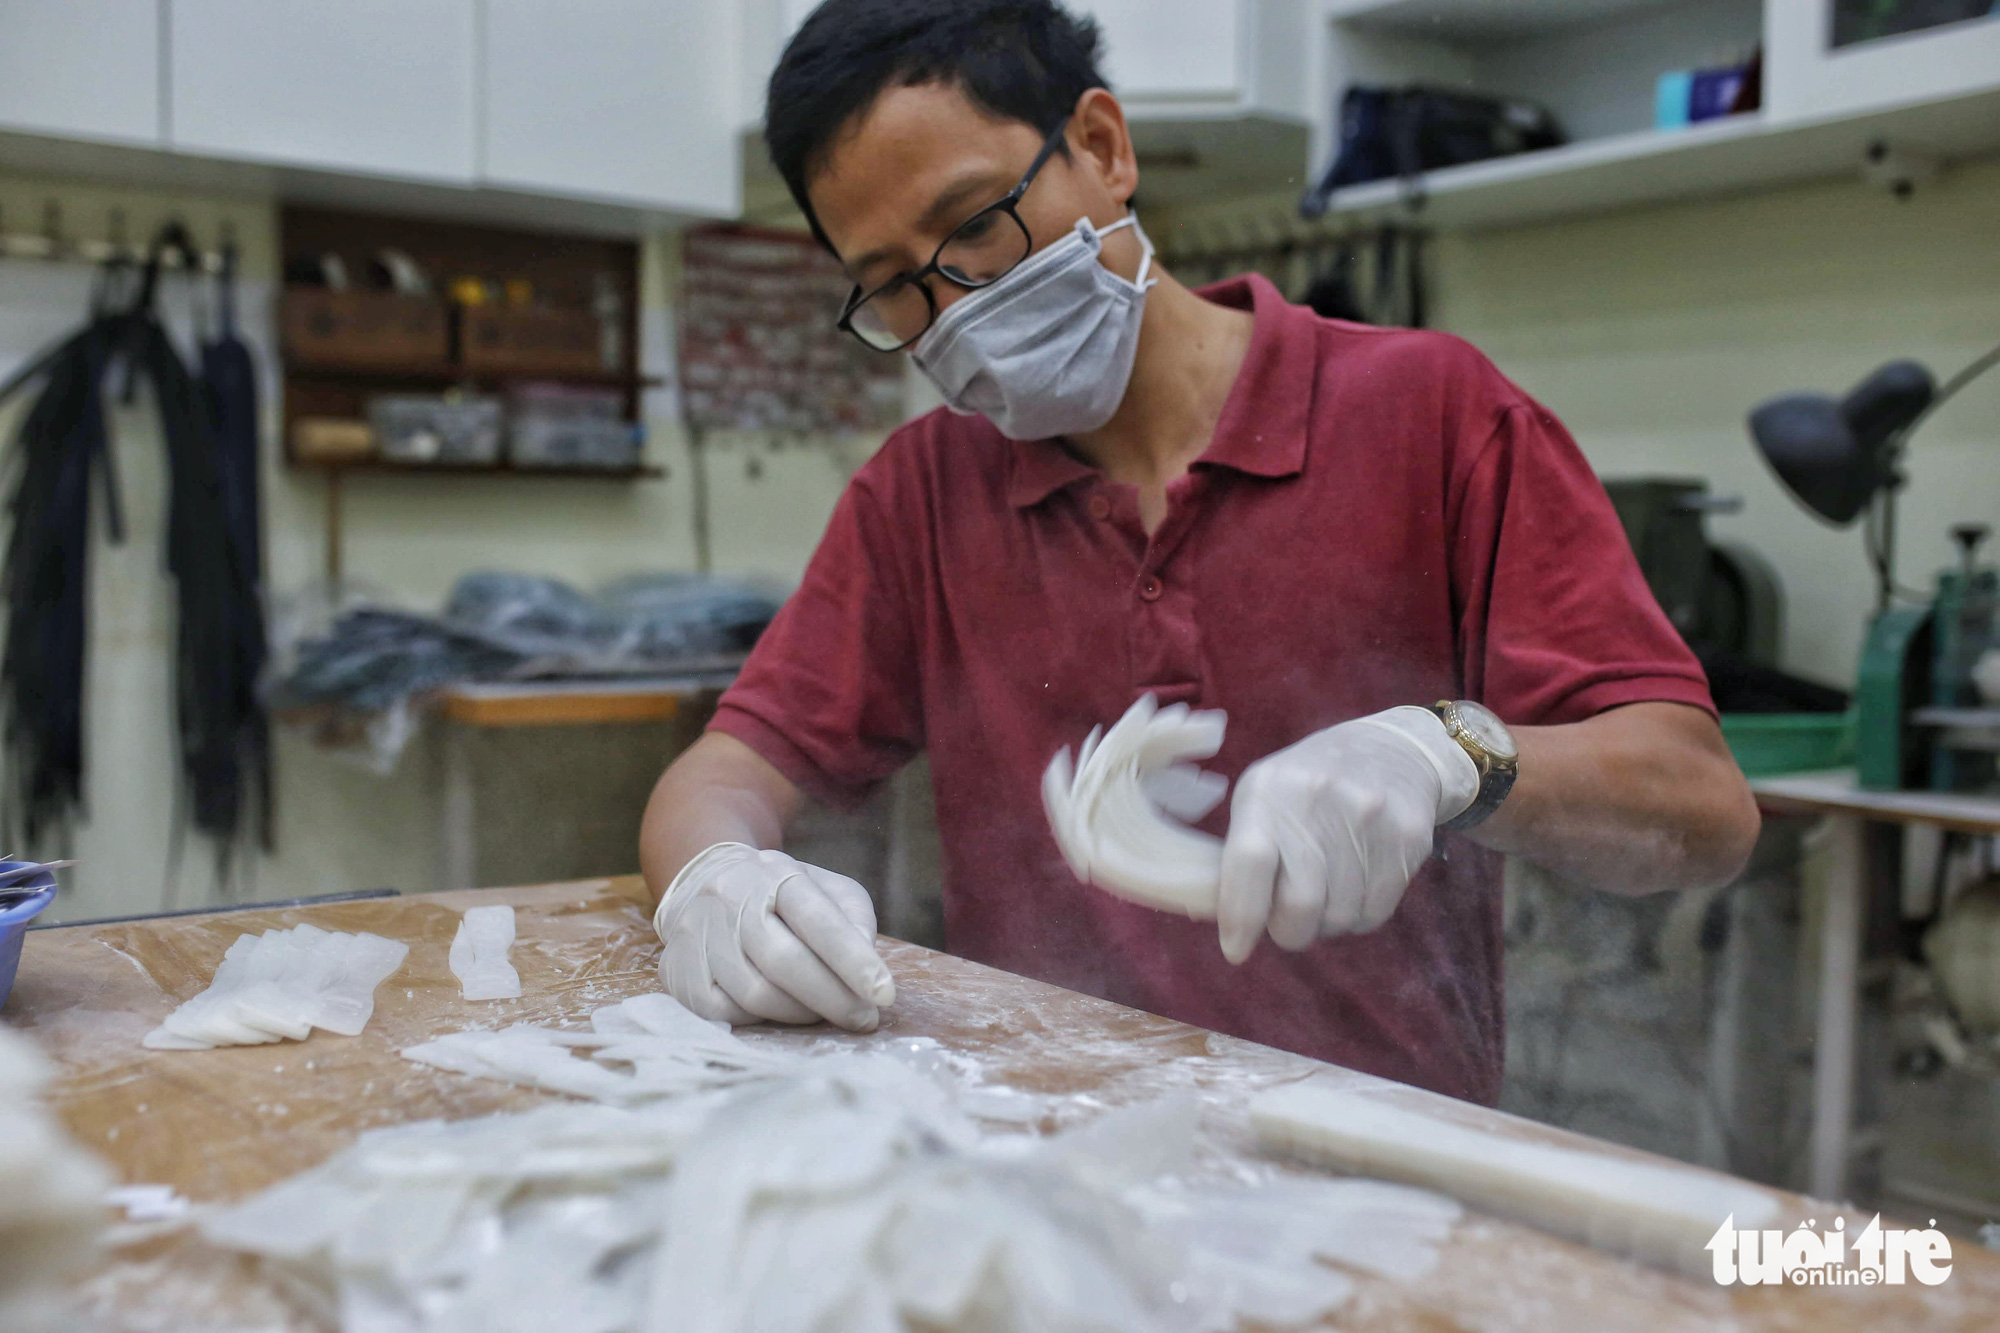 Phan Manh Ha, a member of the volunteer Anti COVID-19 group, shakes excess talc powder off finished ear guards before packaging at a facility in Hanoi, Vietnam. Photo: Mai Thuong / Tuoi Tre